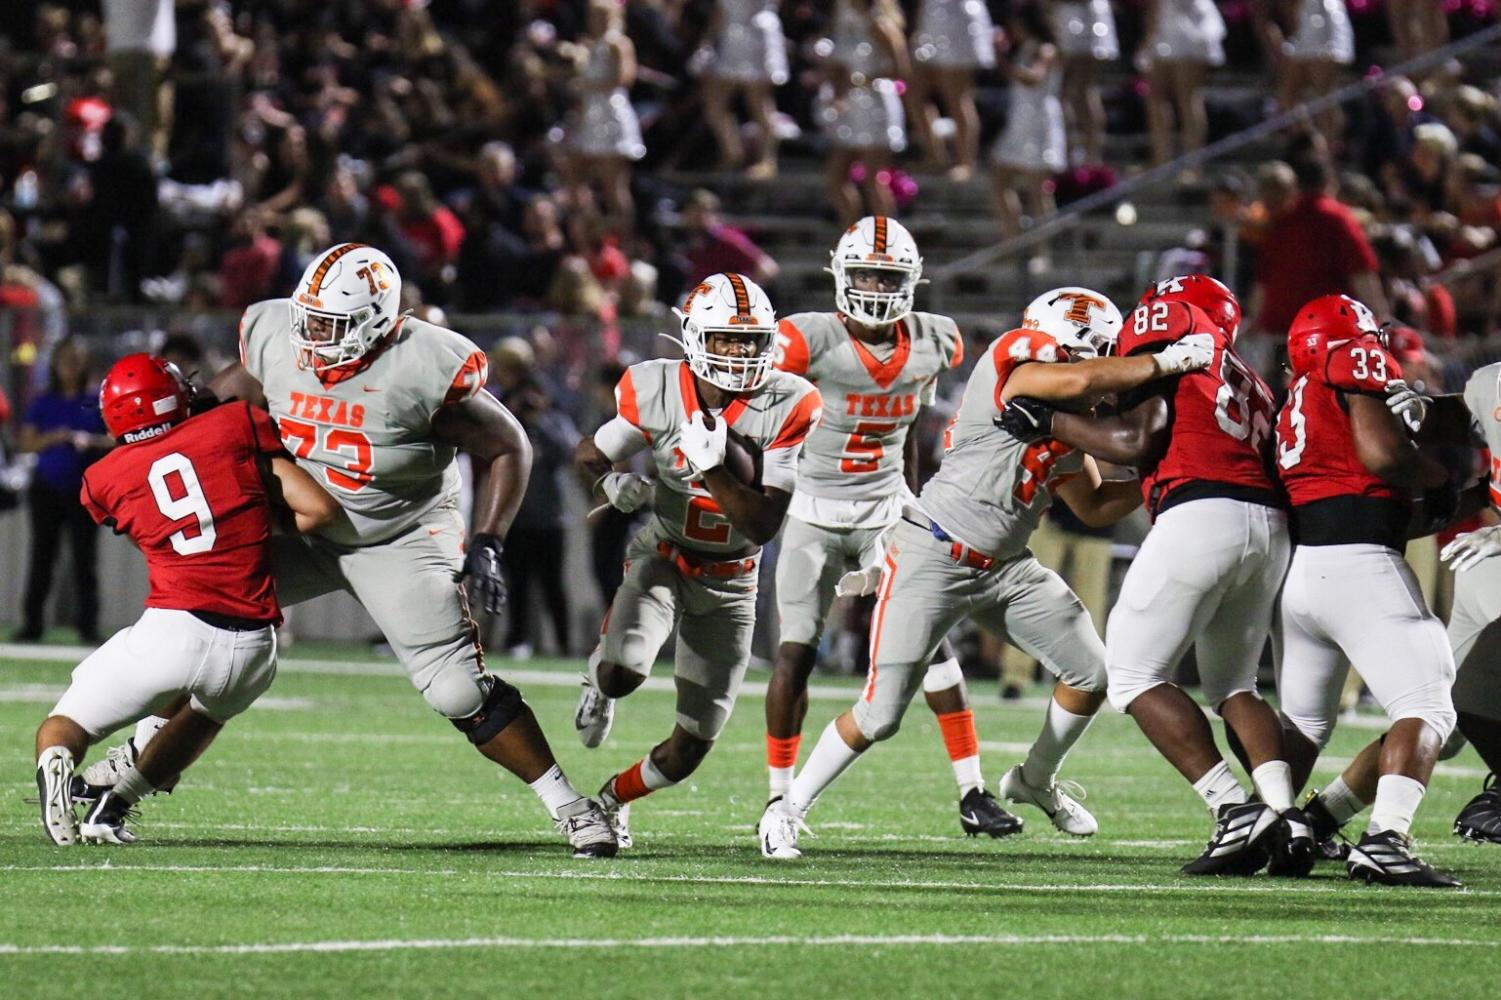 Senior Tracy Cooper runs the ball in the first quarter. Texas High School played against Kilgore High School on September 20, 2019.